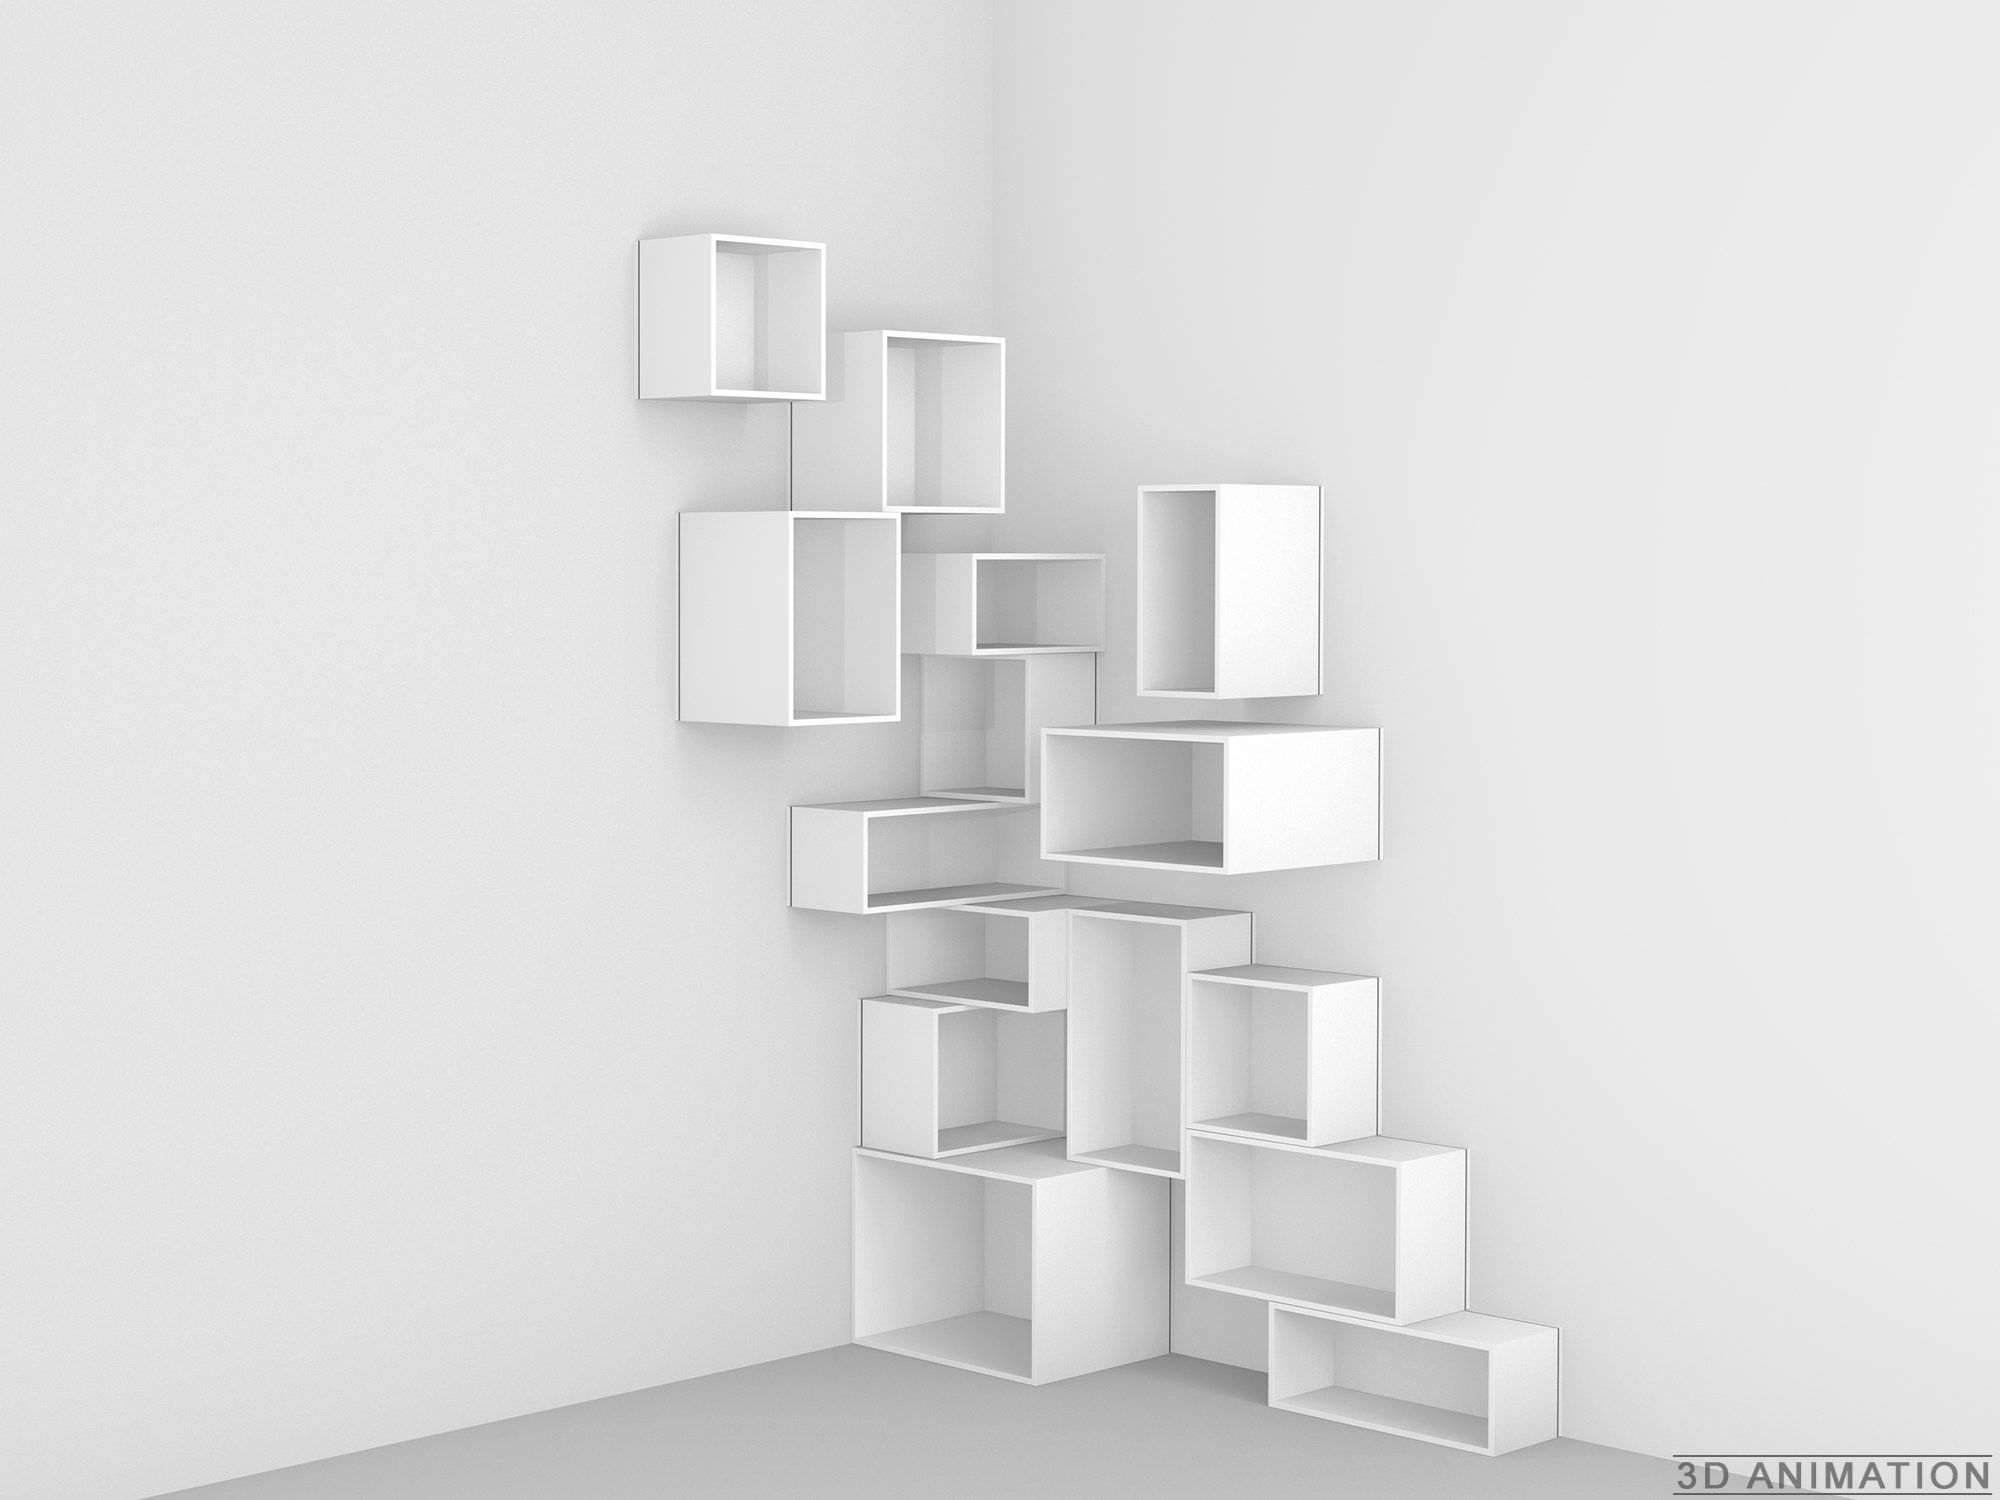 Bibliotheque Modulable By Cubit By Mymito Design Cubit Etagere Angle Idees Etageres Meuble Bureau Design